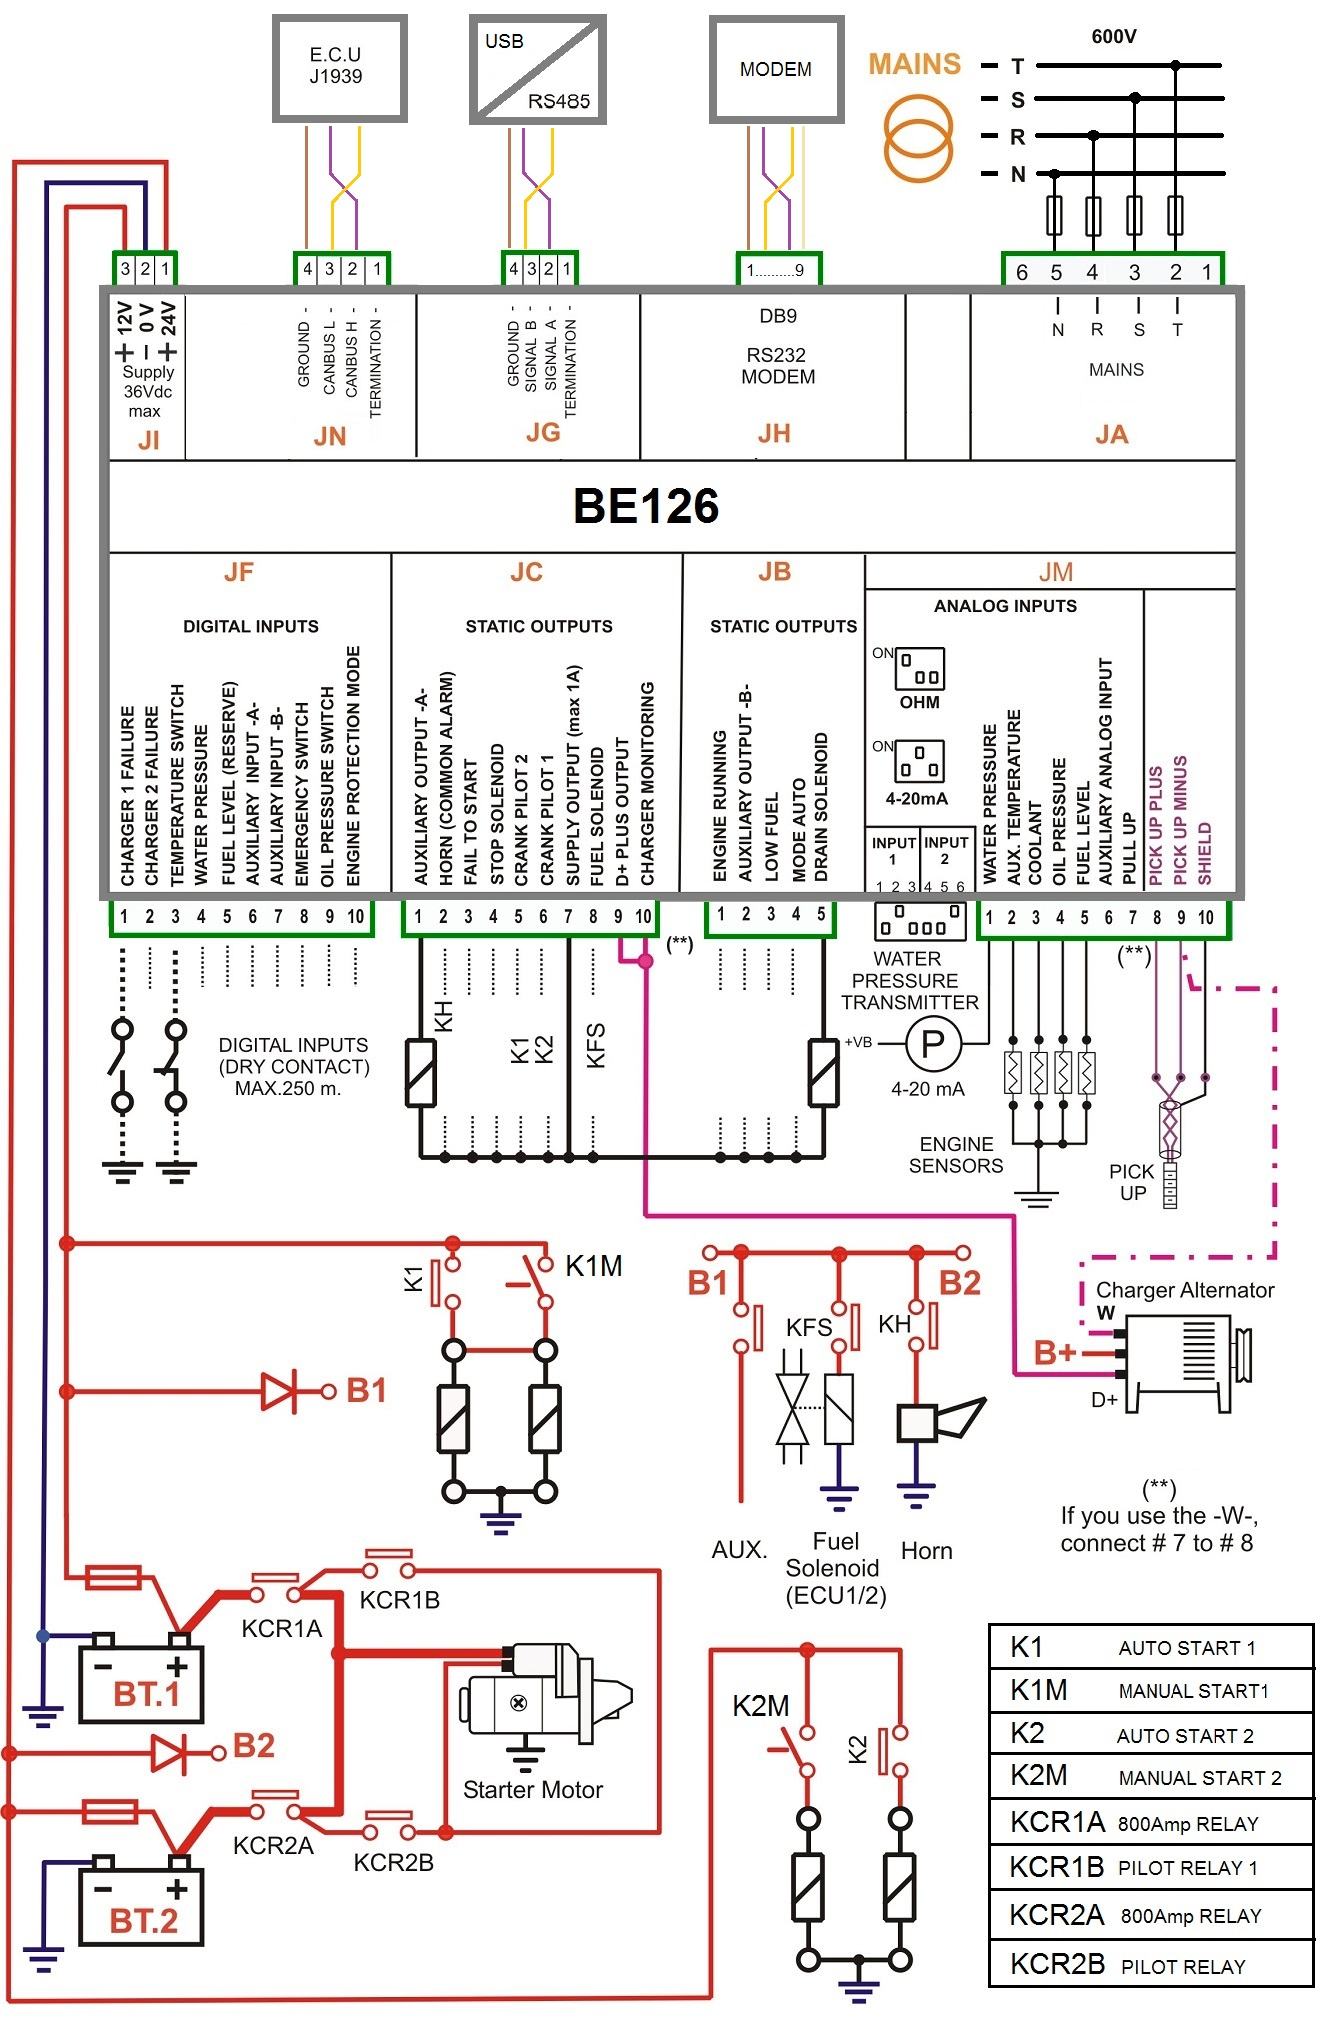 fire pump controller wiring diagram genset controller rh bernini design com fire pump controller wiring diagram pdf fire pump controller wiring diagram